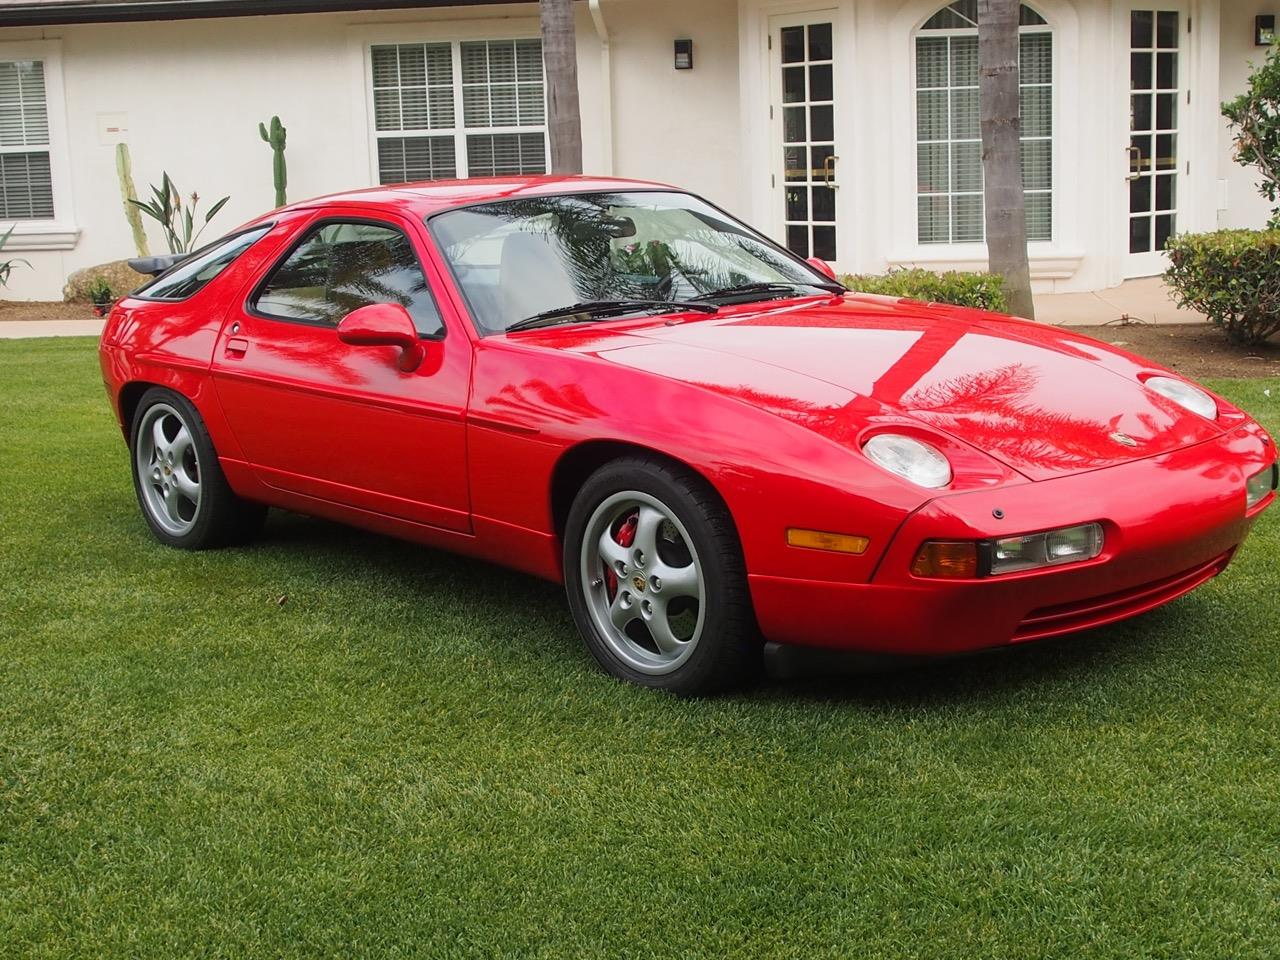 1988 Porsche 928 for sale in Carlsbad, CA – photo 5